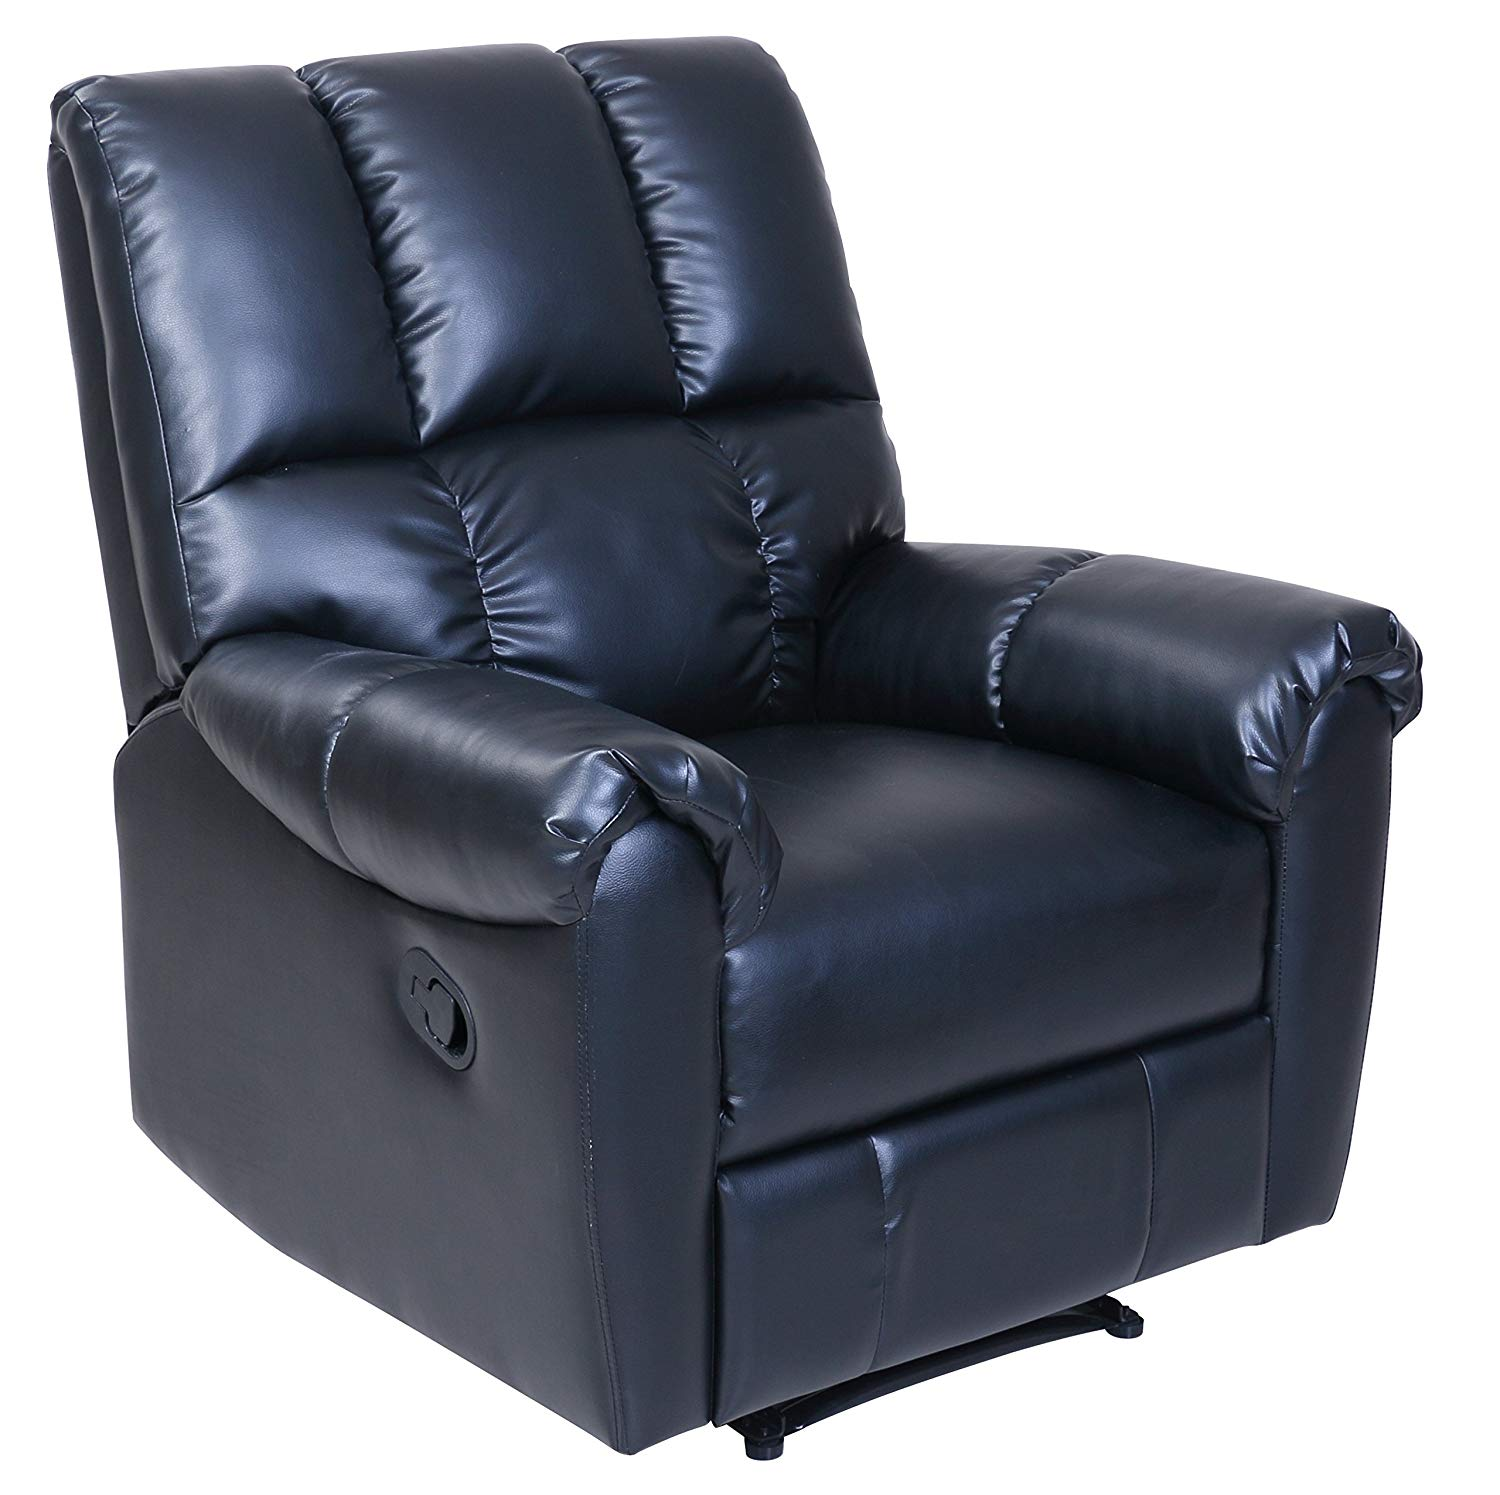 BarcaLounger Restore & Relax leather Recliner Black